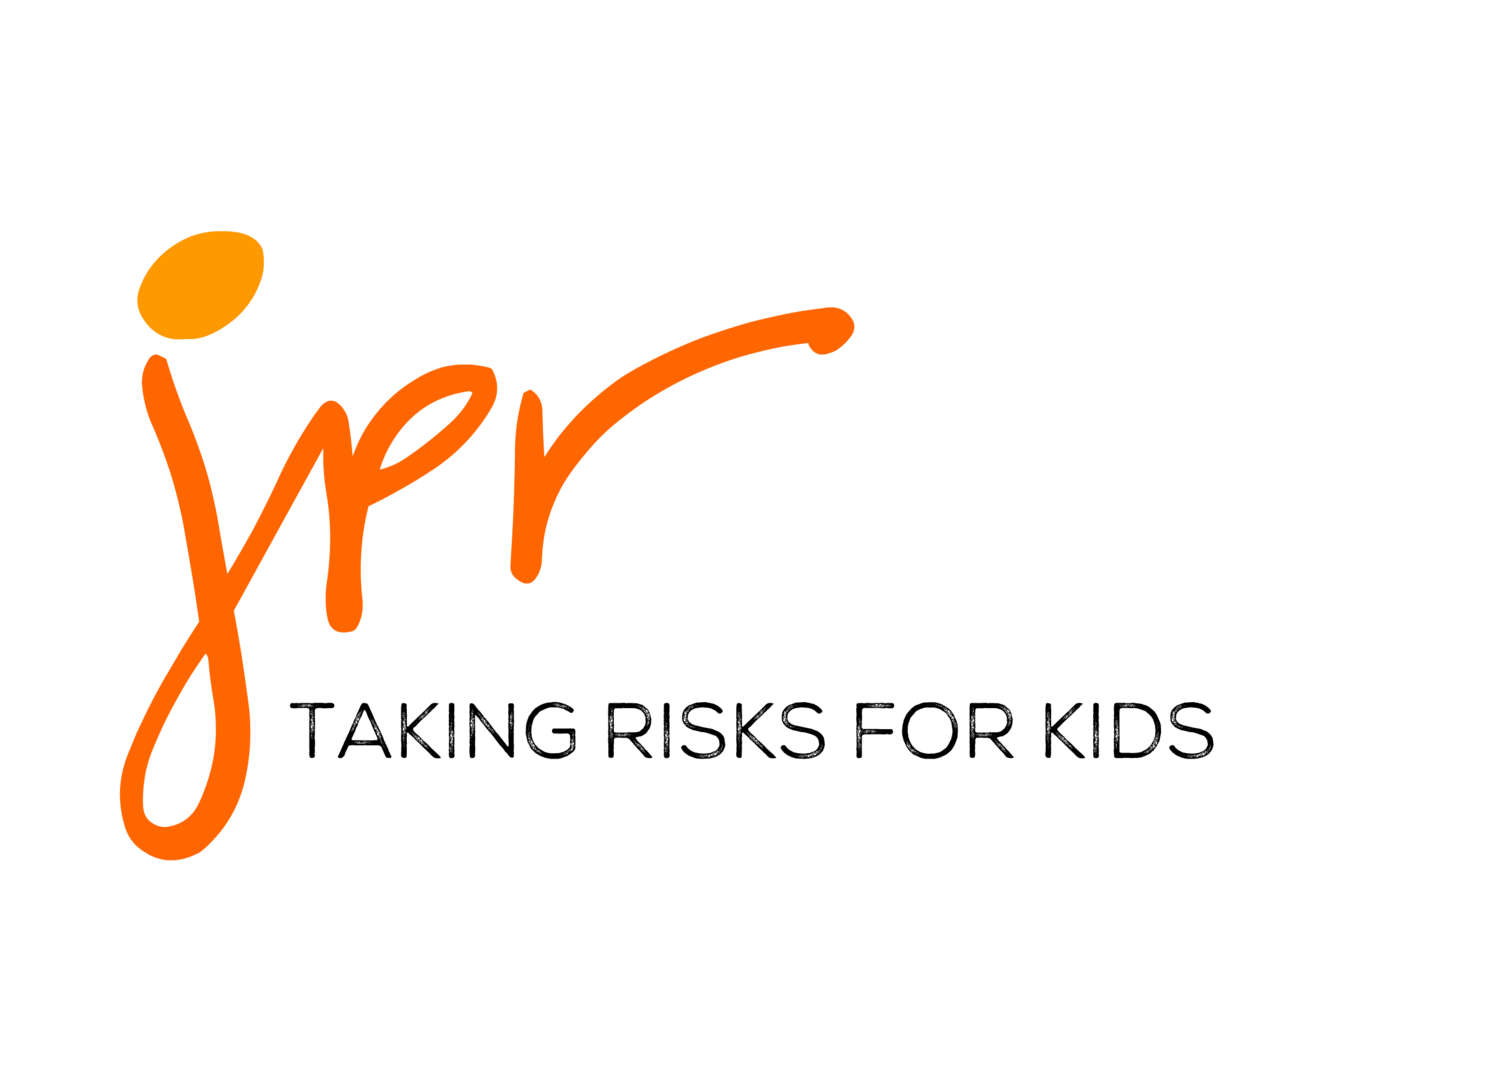 JPR: Taking Risks For Kids